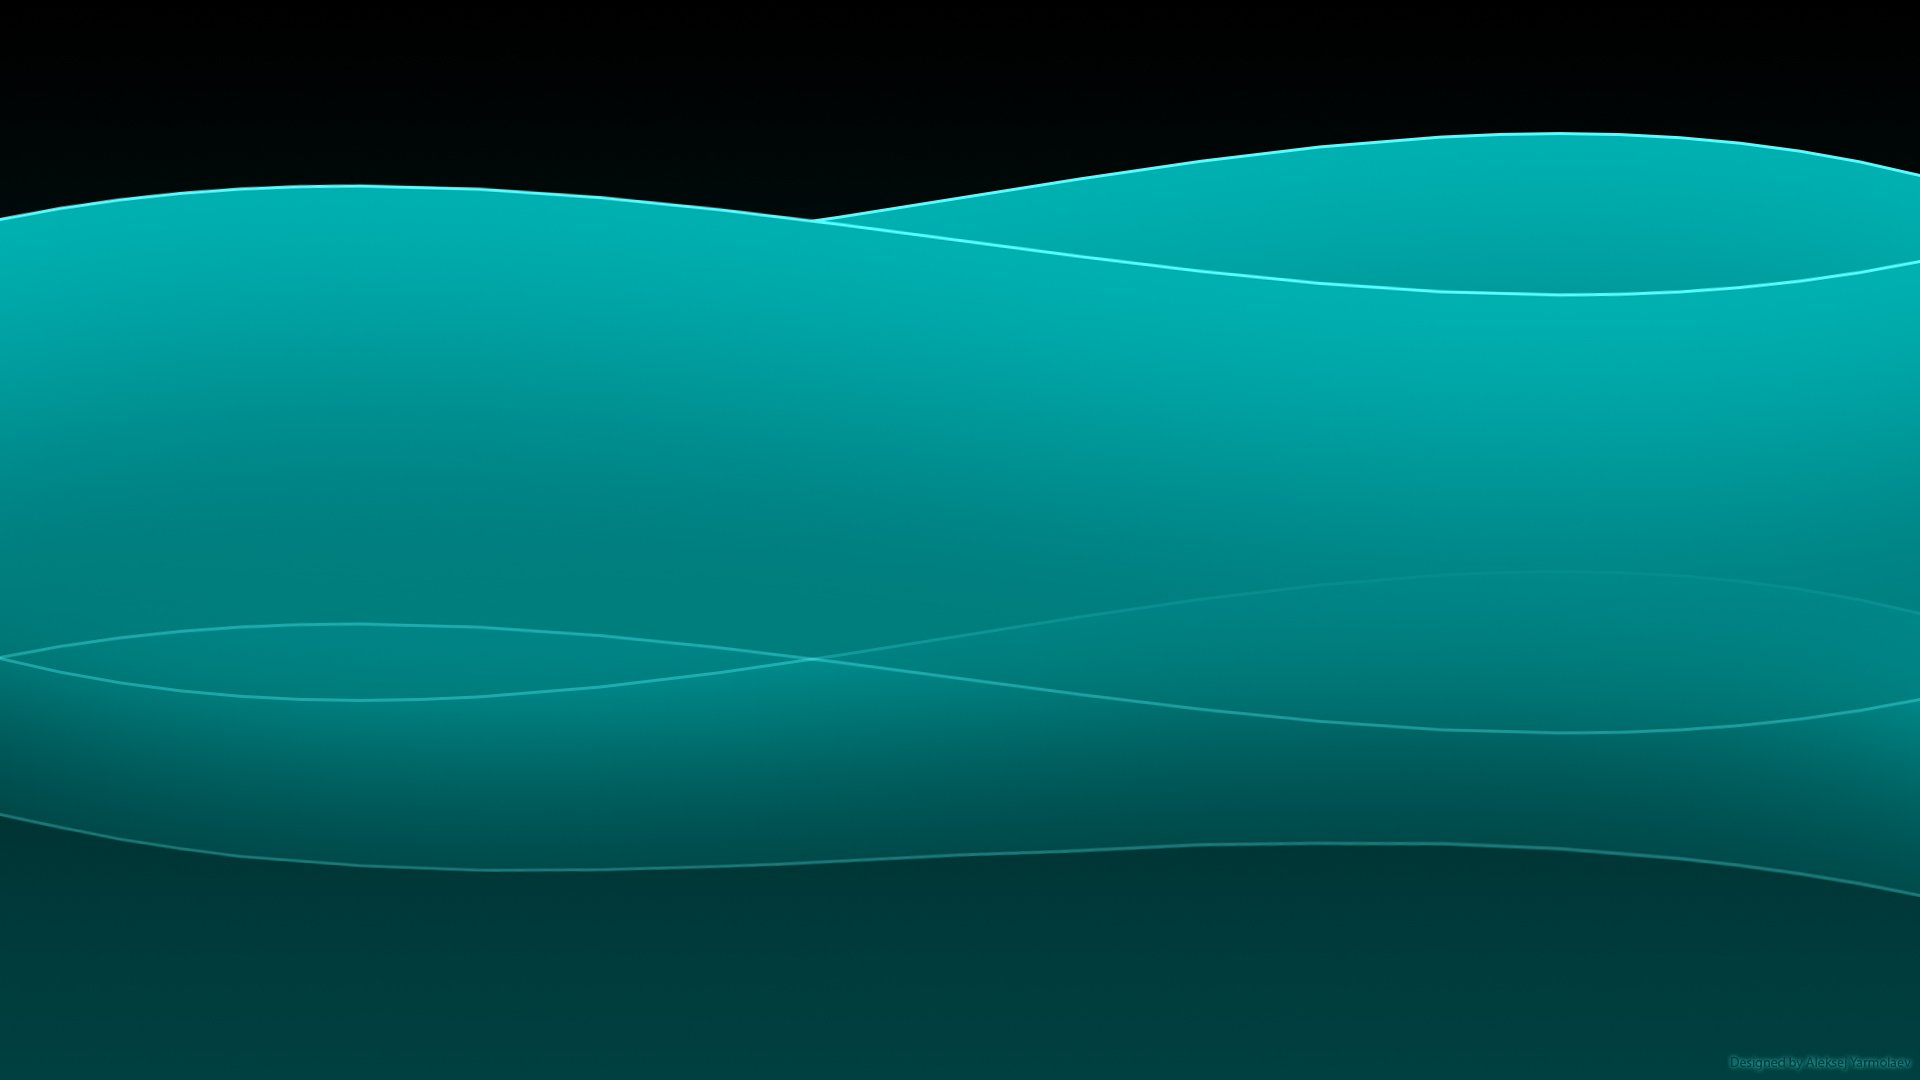 Turquoise And Black Wallpaper   Desktop Backgrounds 1920x1080